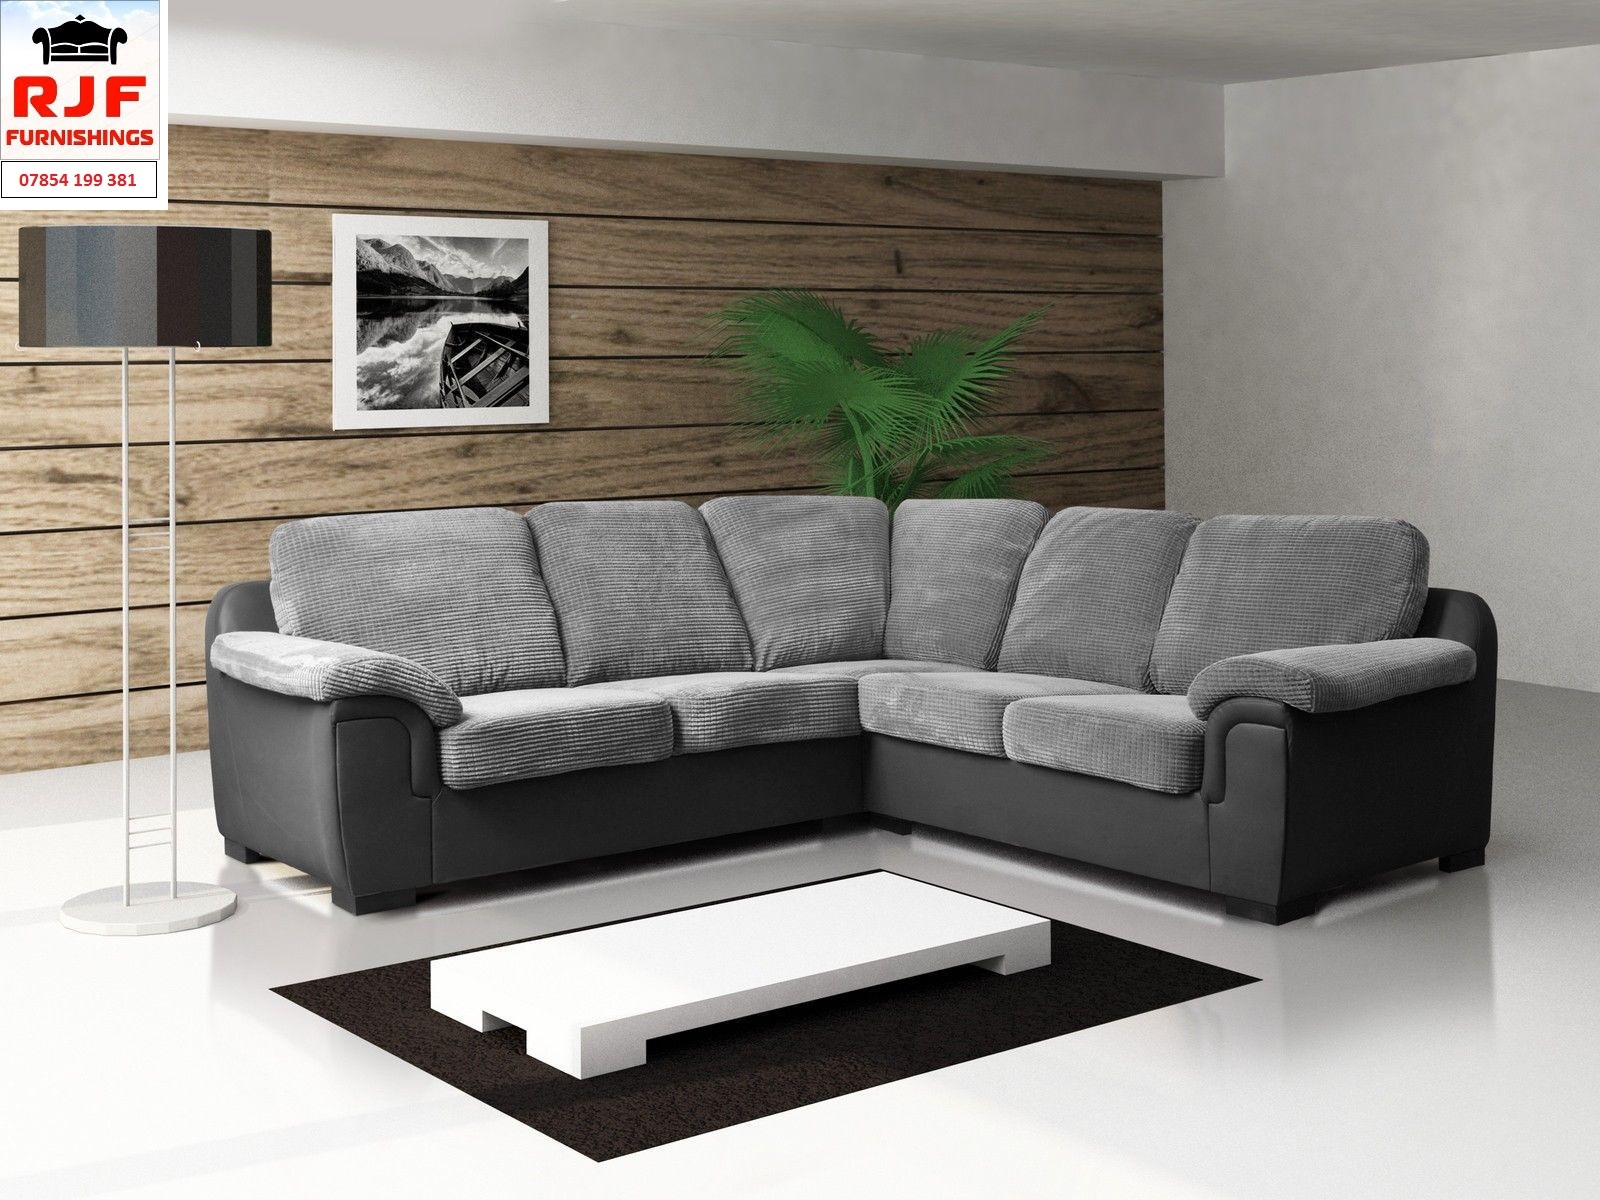 Cheap Sofas Bristol Cheap Sofas Uk Pay Monthly Brokeasshome Com Sofa Shops Bristol Sofa The